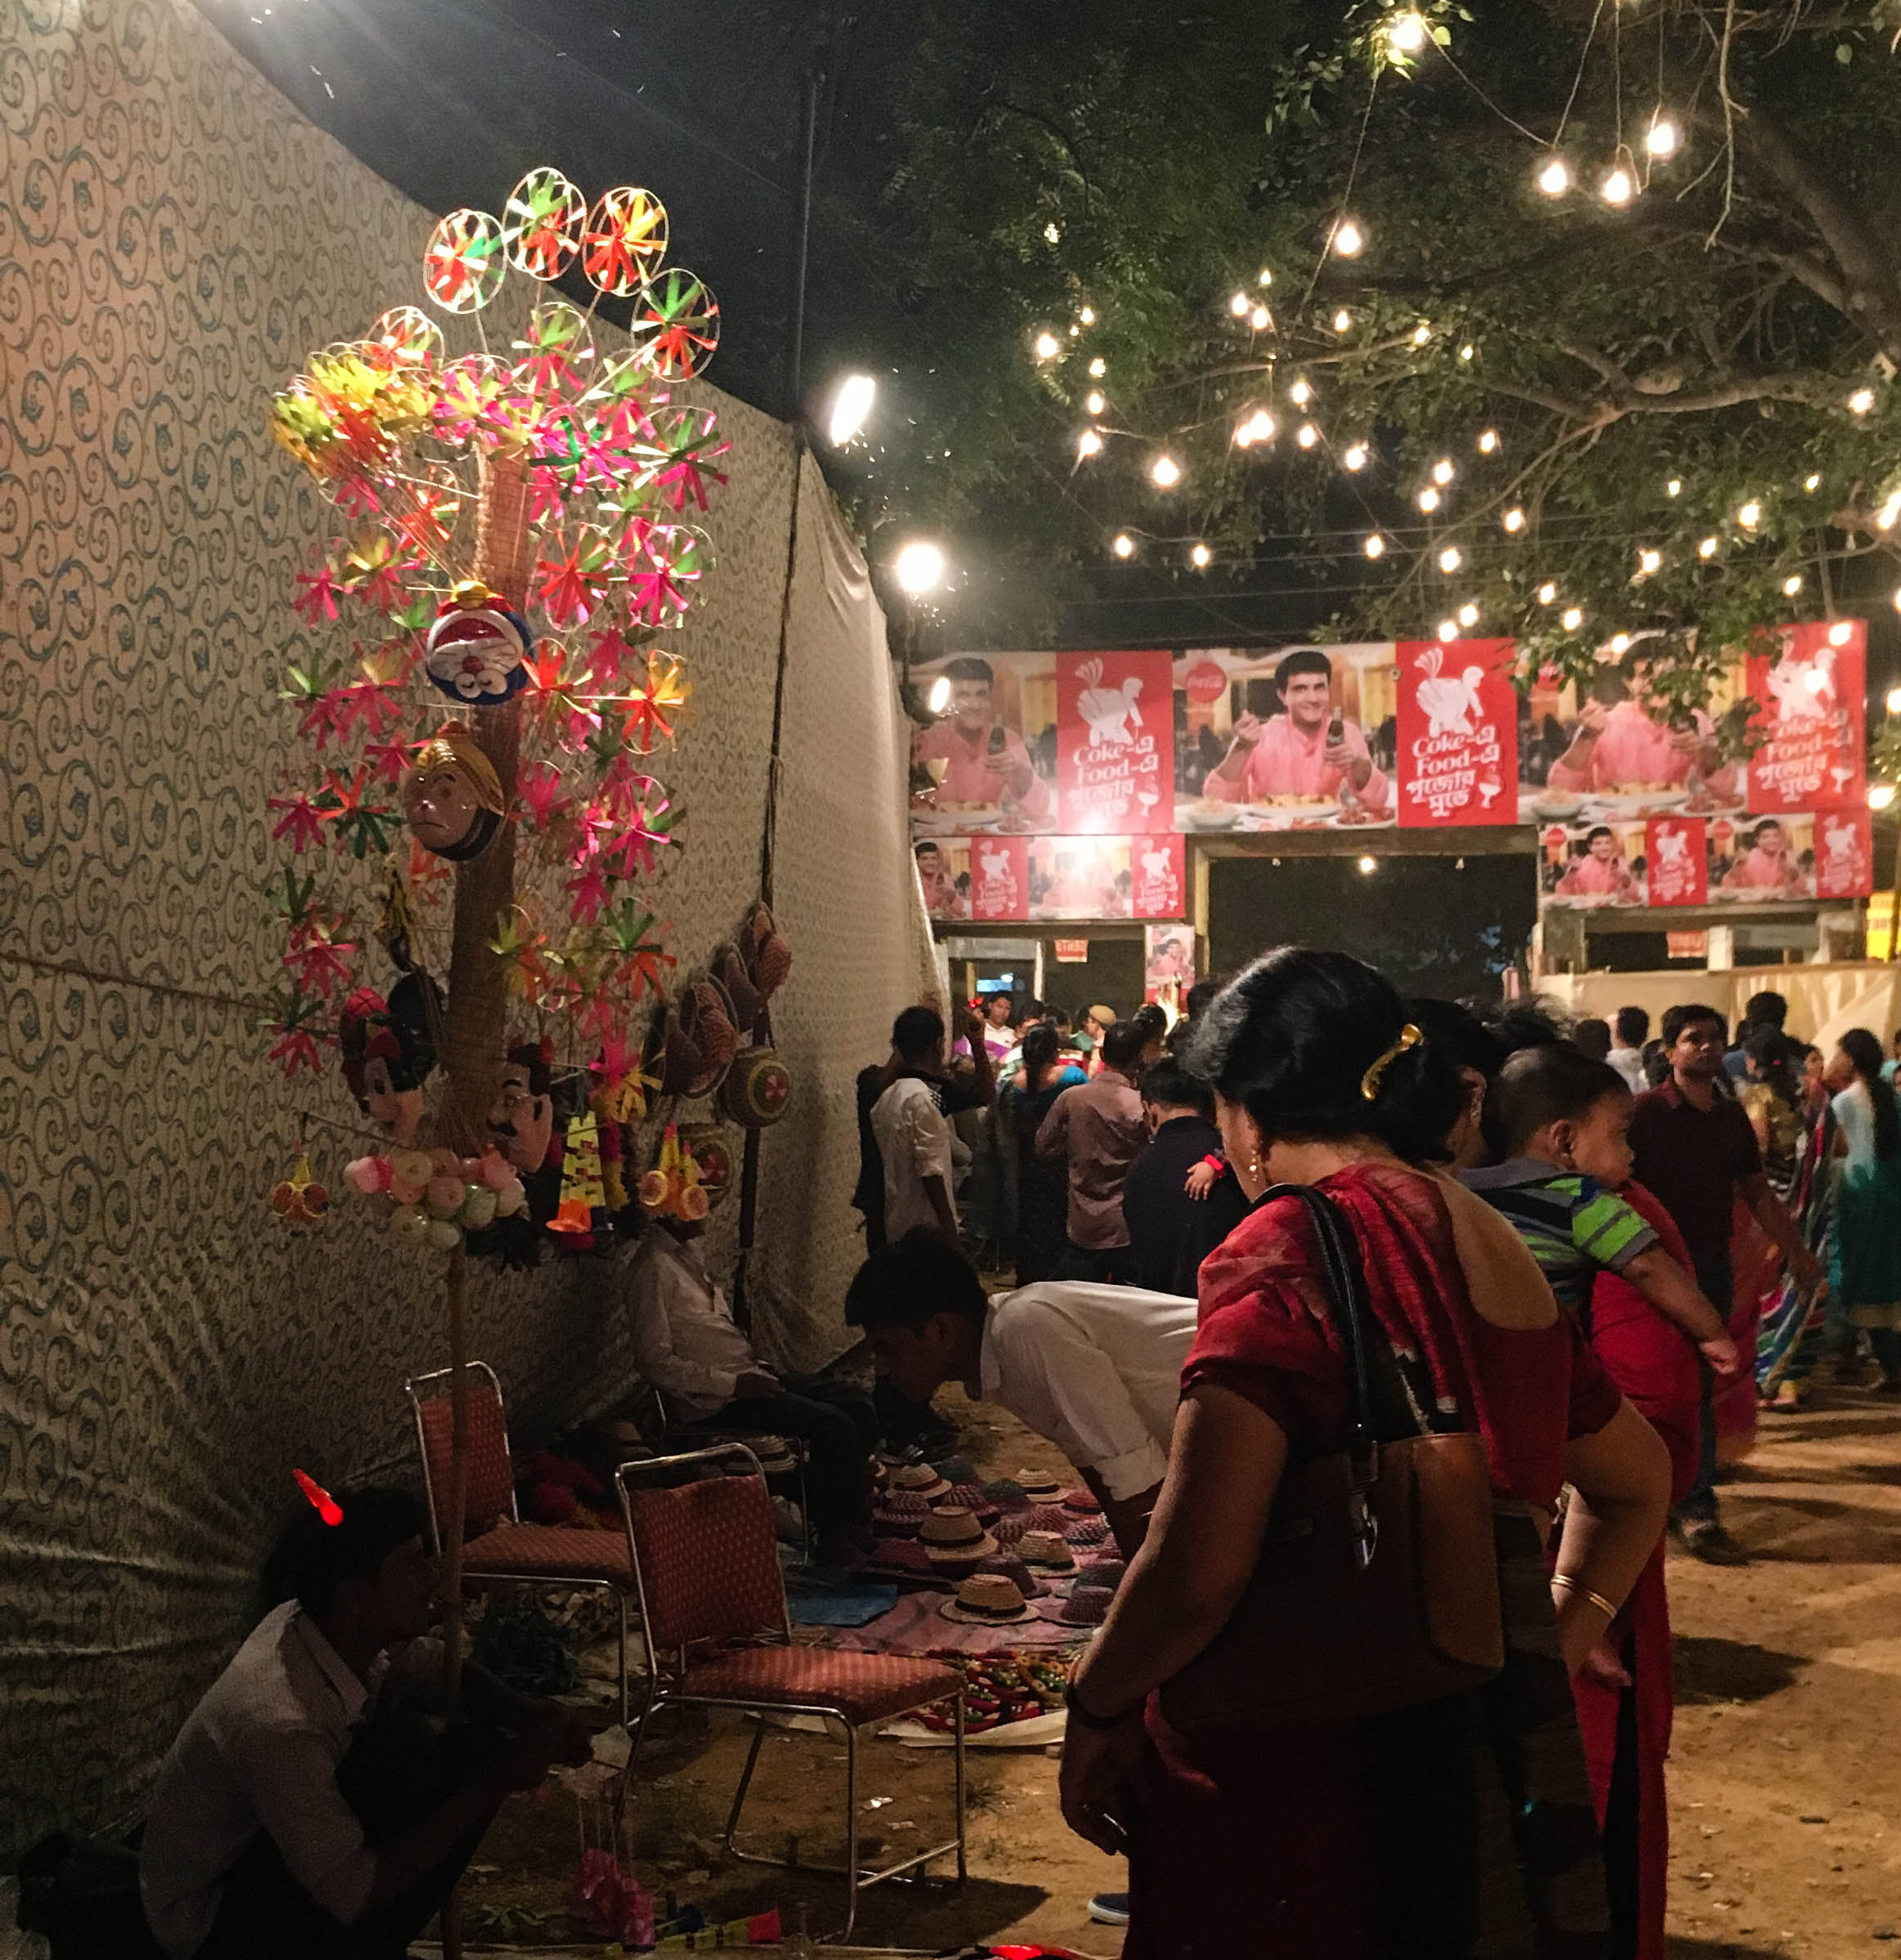 The goddess has vanquished  Mahishasur, but the red-horned fan seller poses a little problem: to buy or not to buy yet another fan?